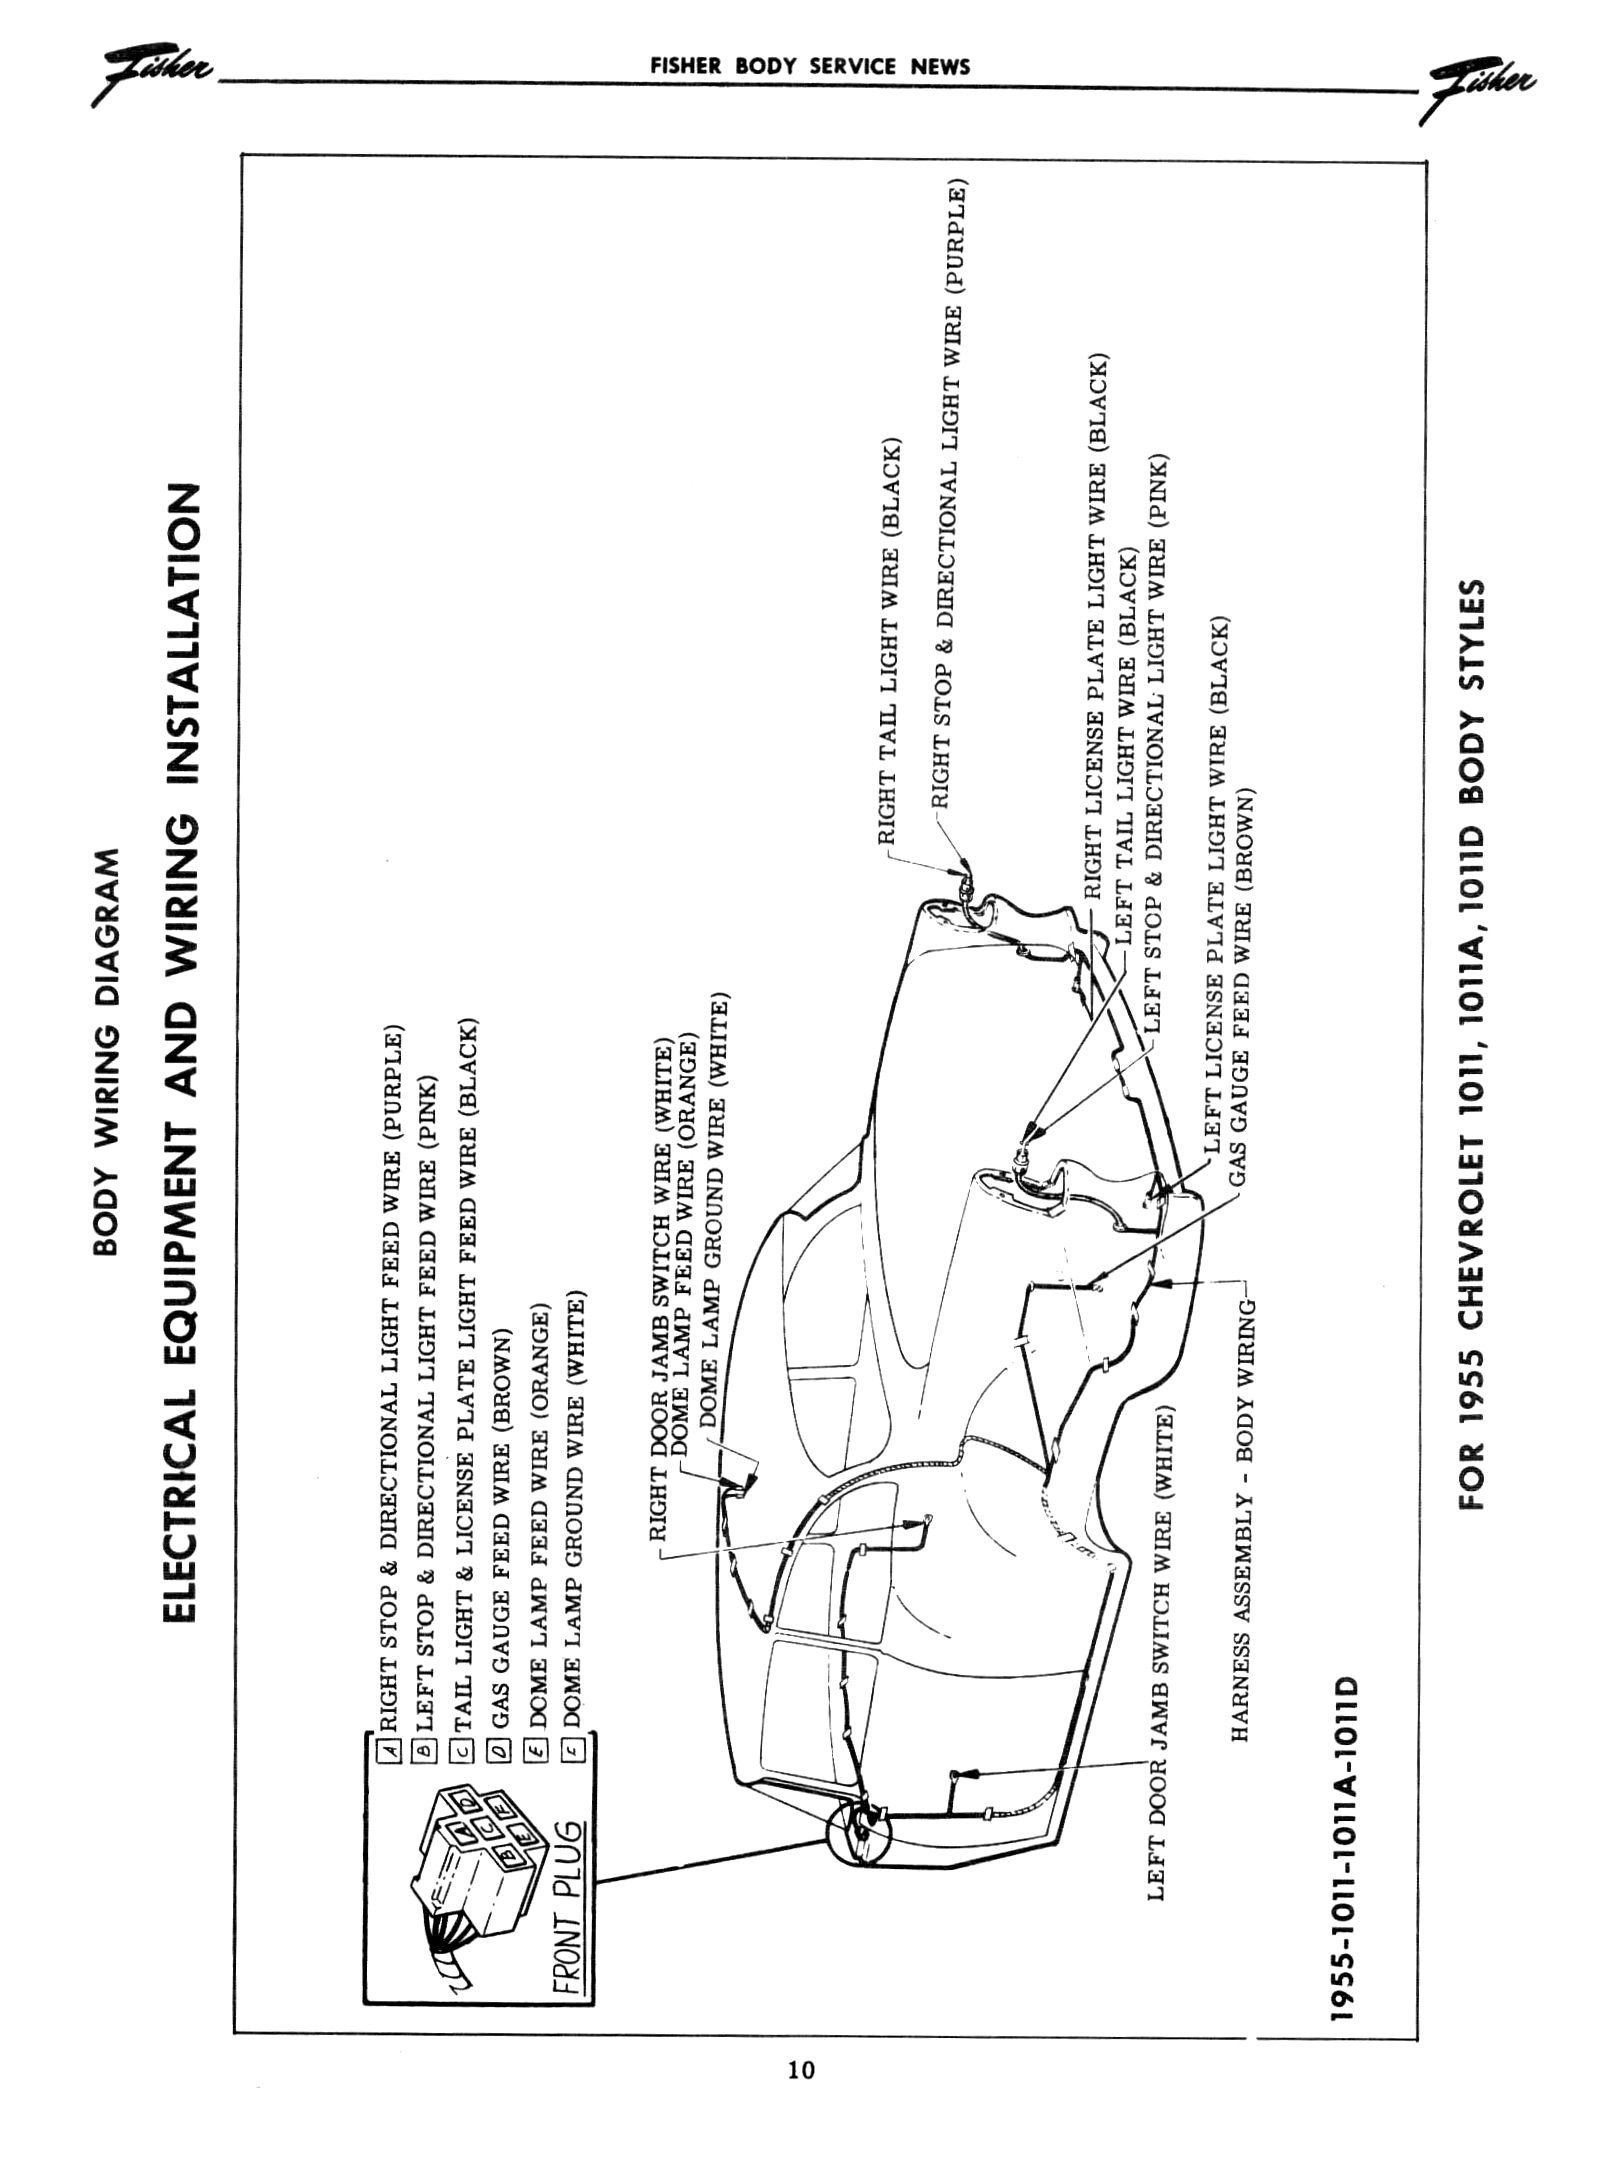 1955 Chevy Bel Air Wiring Diagram Wiring Diagrams on 1950 ford headlight switch wiring diagram